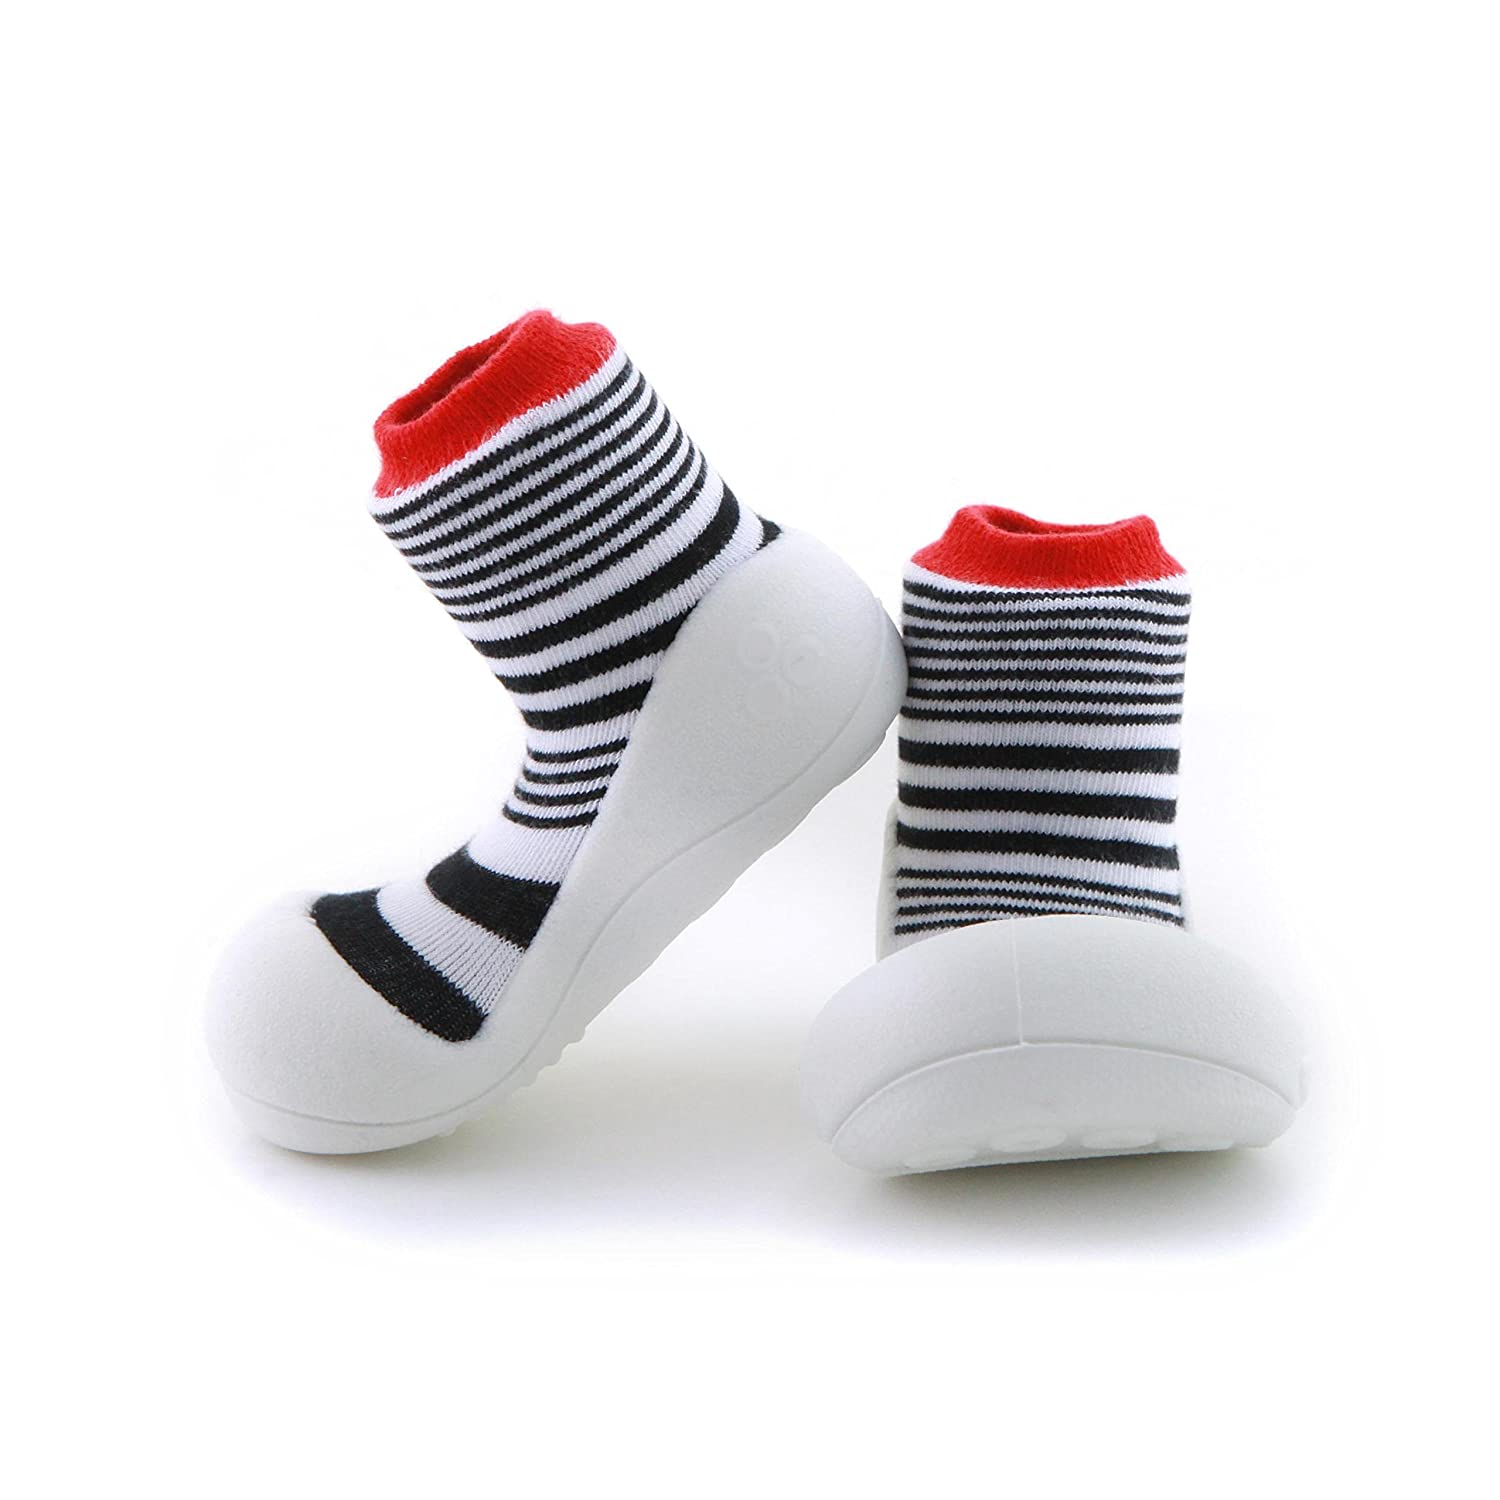 First Walking Shoes with Socks for Baby Boys Girls (Small, Urban Red) BigToes